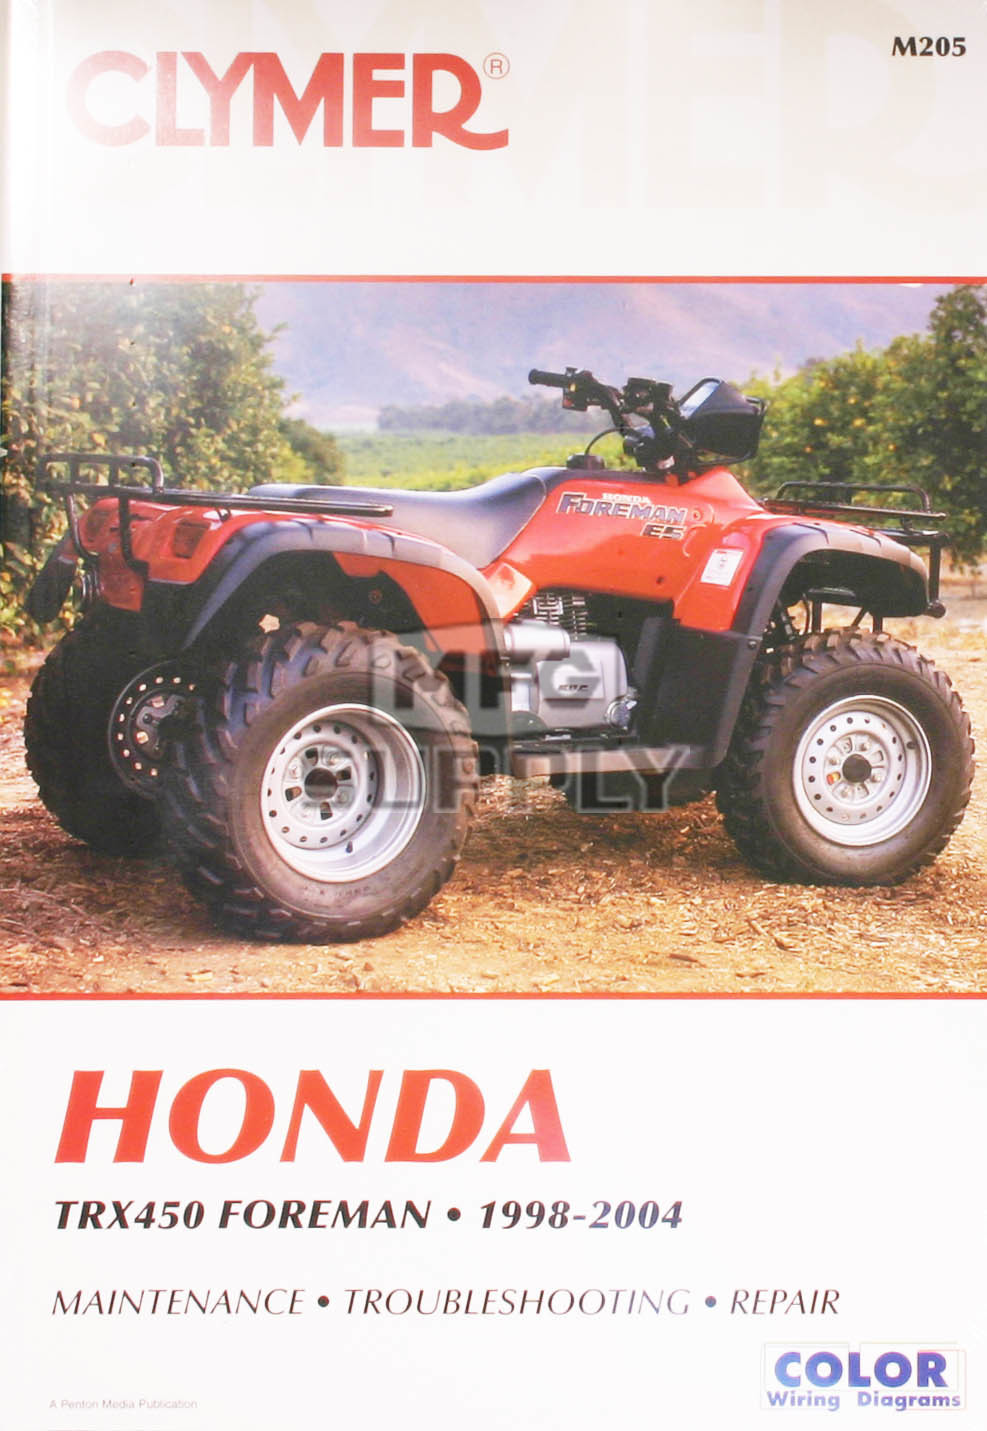 hight resolution of cm205 99 04 honda trx450 foreman repair maintenance manual